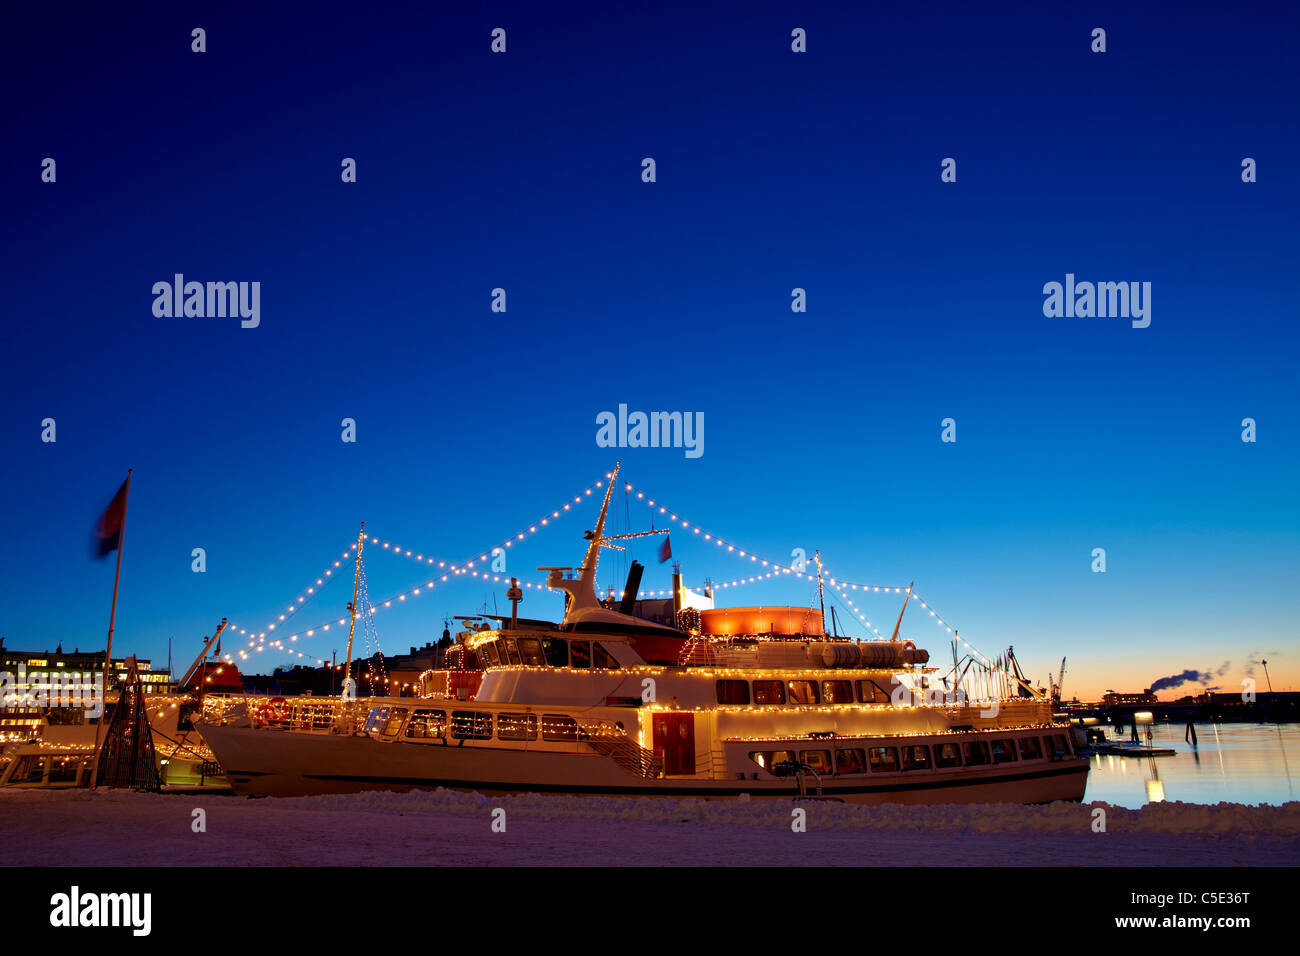 Side shot of an illuminated ship against the blue sky at dusk in Goteborg - Stock Image